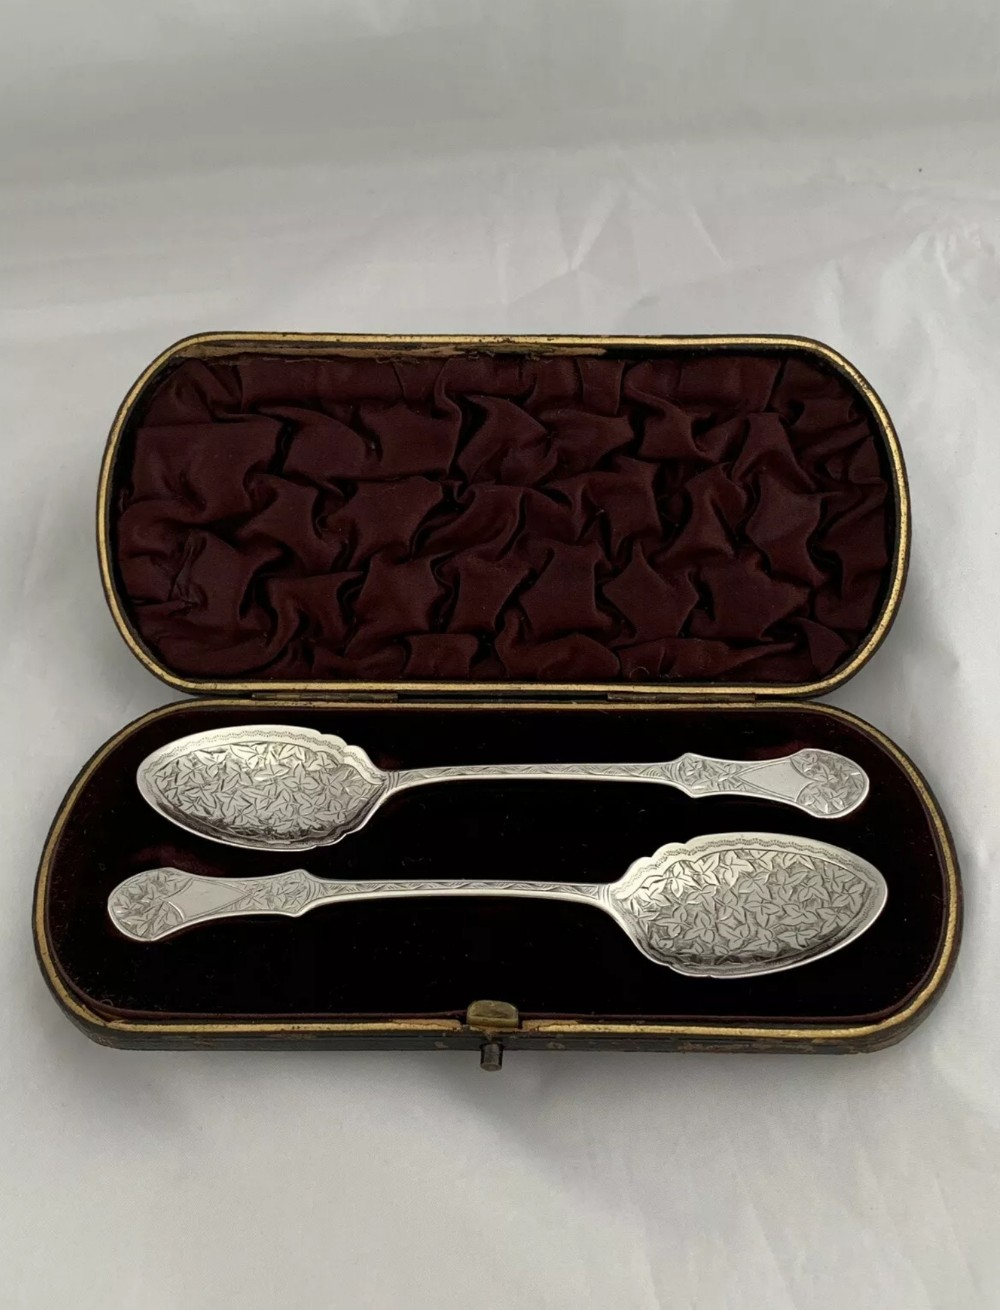 victorian solid silver preserve or jam spoons 1845 london